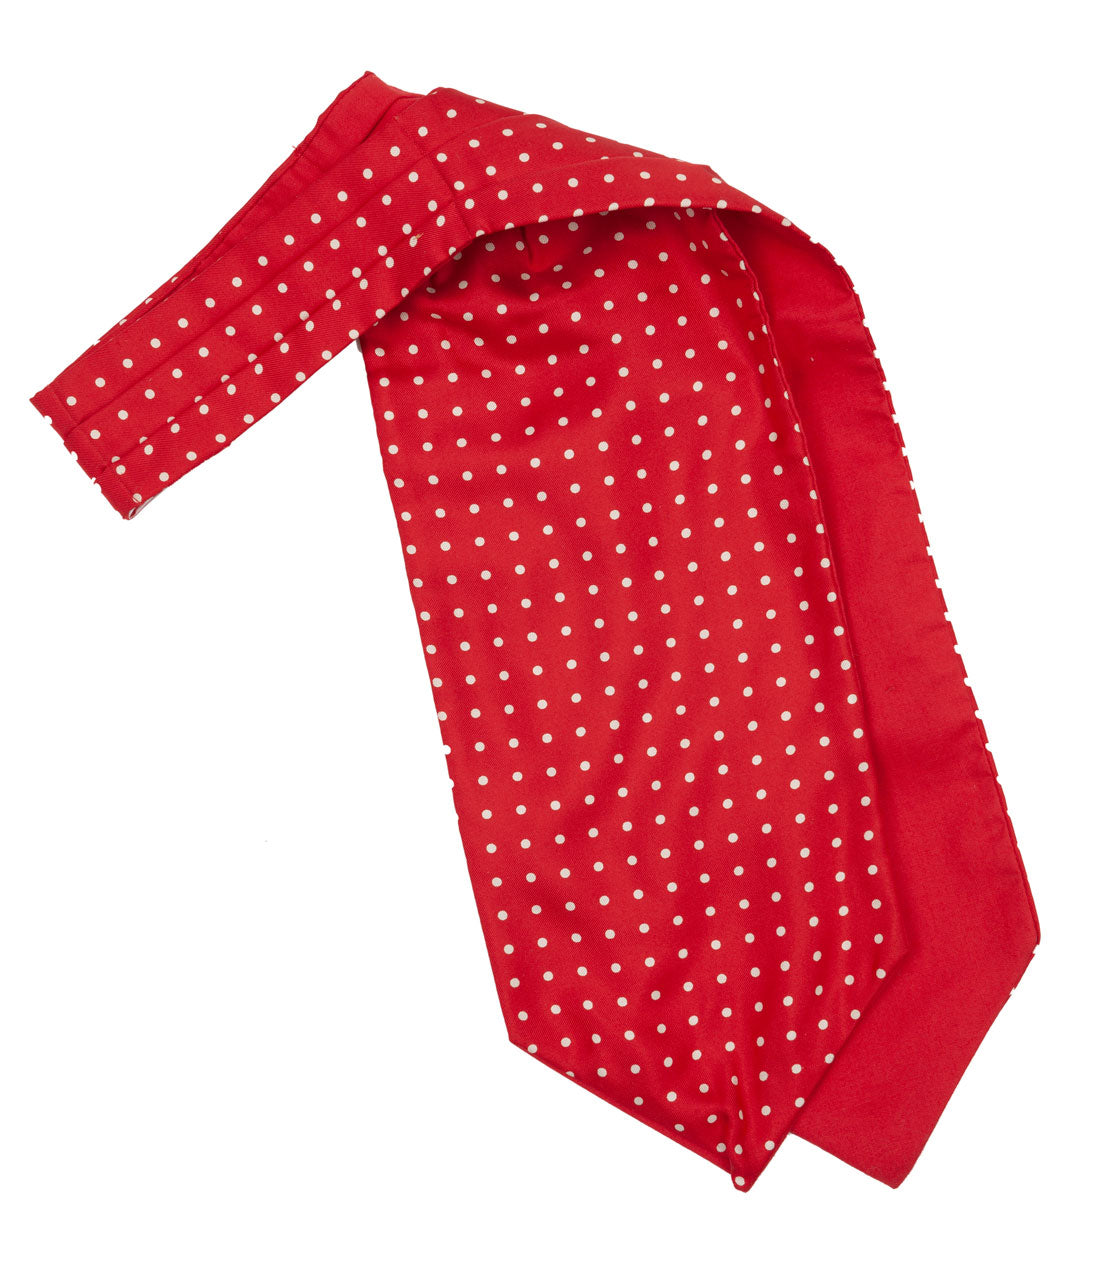 Luxury silk cravat made in England and designed exclusively for Regent, featuring cotton backing to help it 'sit up' well on the shirt and at the neck. A smart, sharp red is softened by cool white spots.